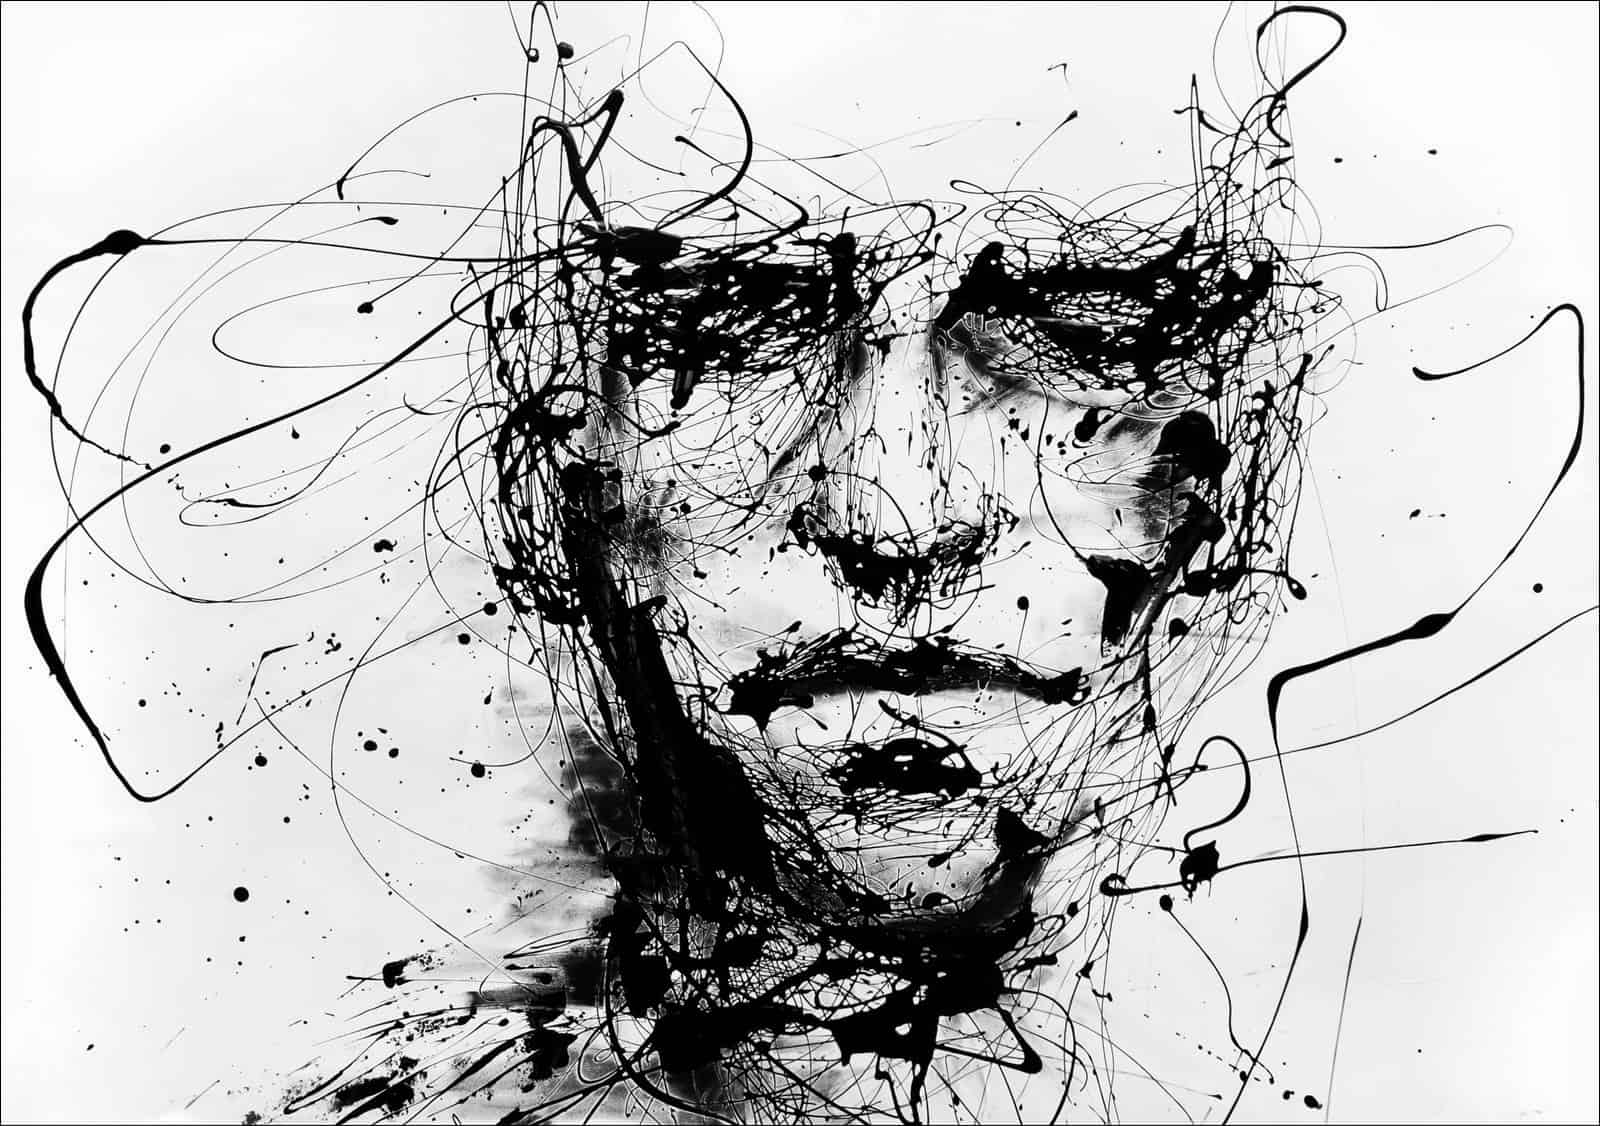 The confused mind, affected by anxiety and depression